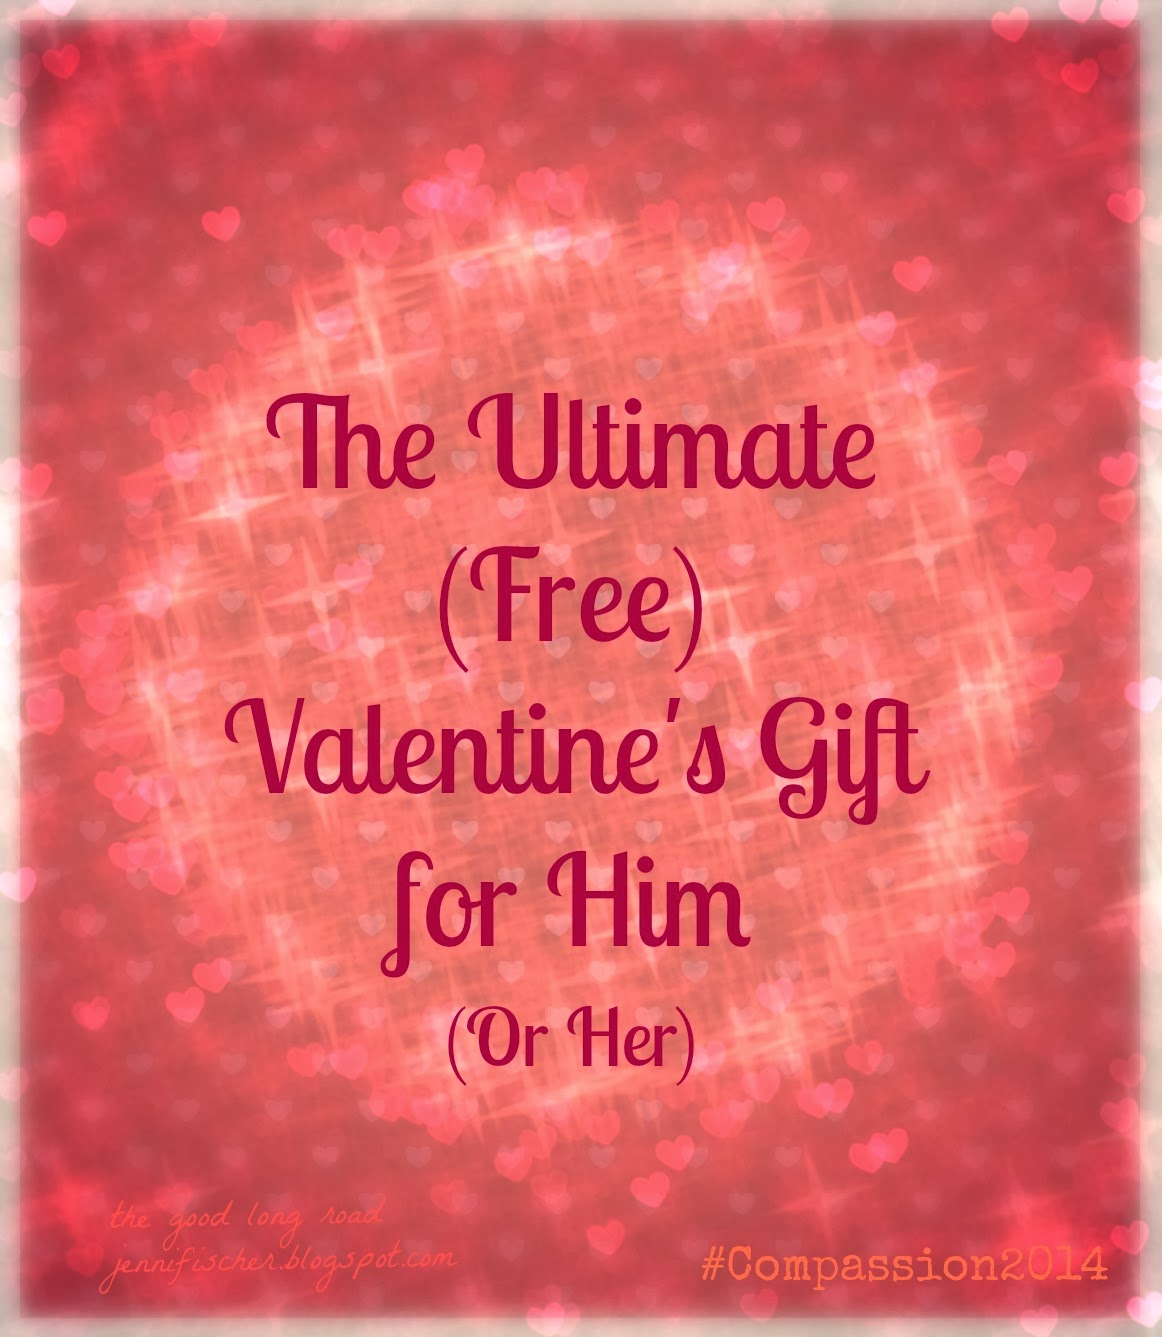 The Ultimate Free Valentine's Gift for Him...(or Her): A Simple Act of ...